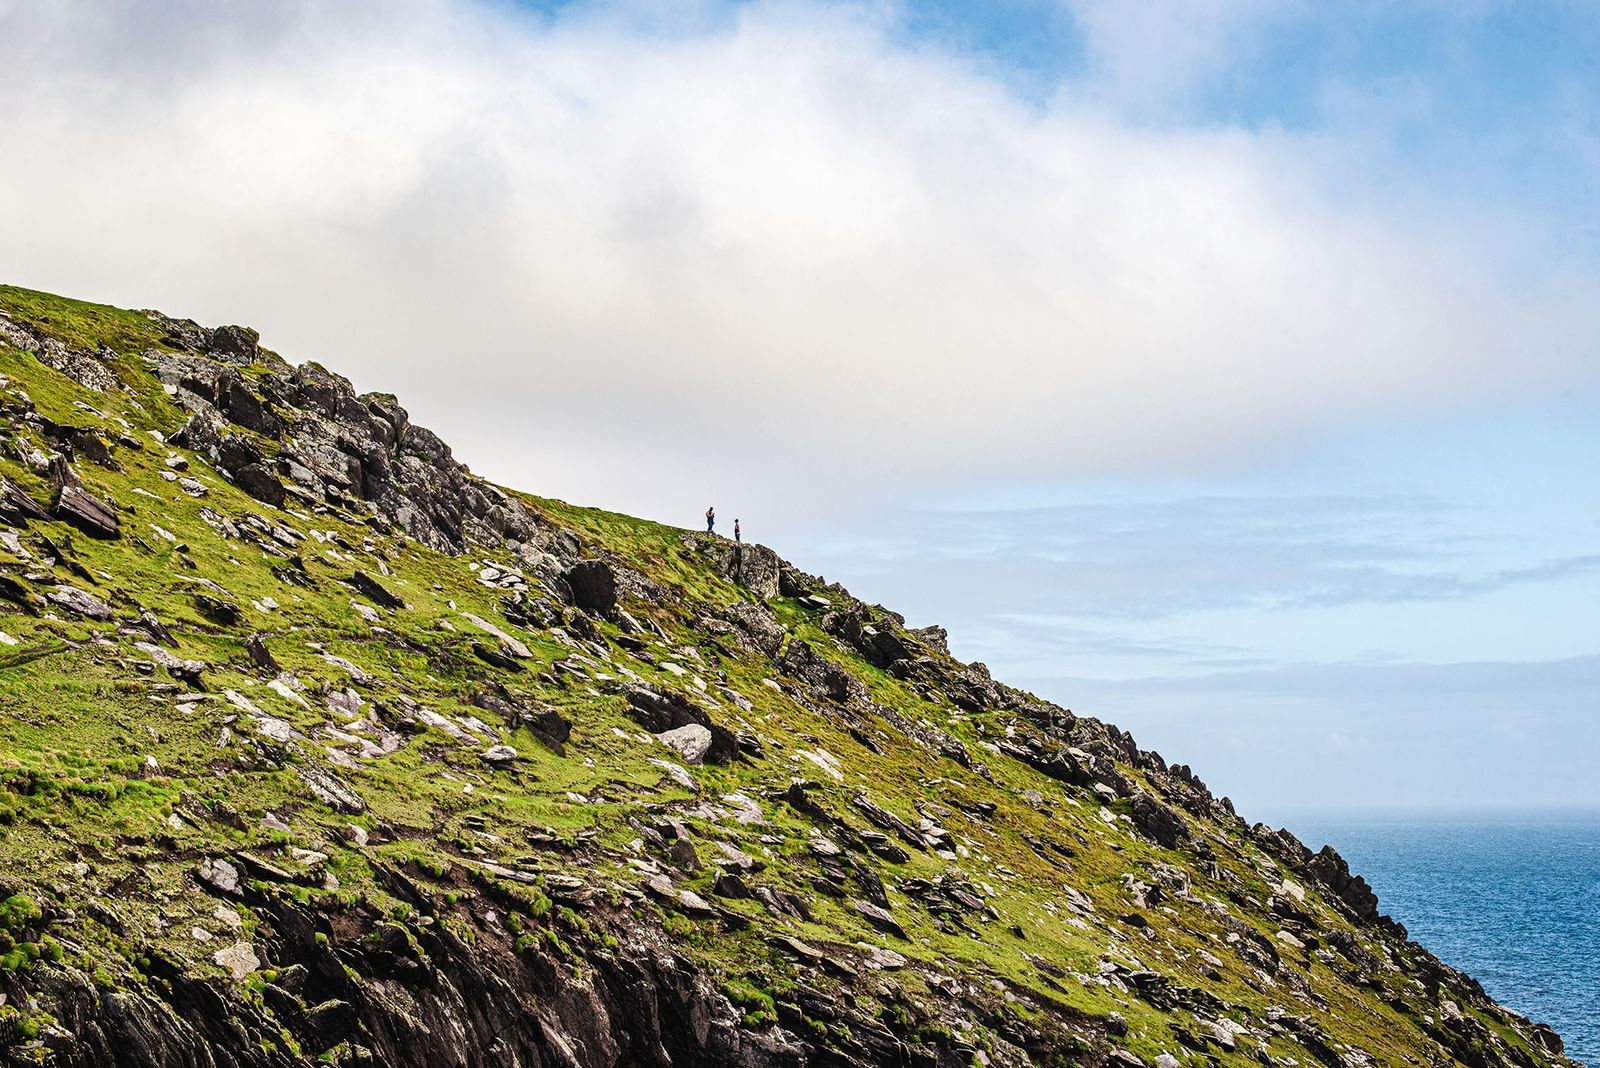 Walkers scale the cliffs of Dunmore Head, Dingle Peninsula.